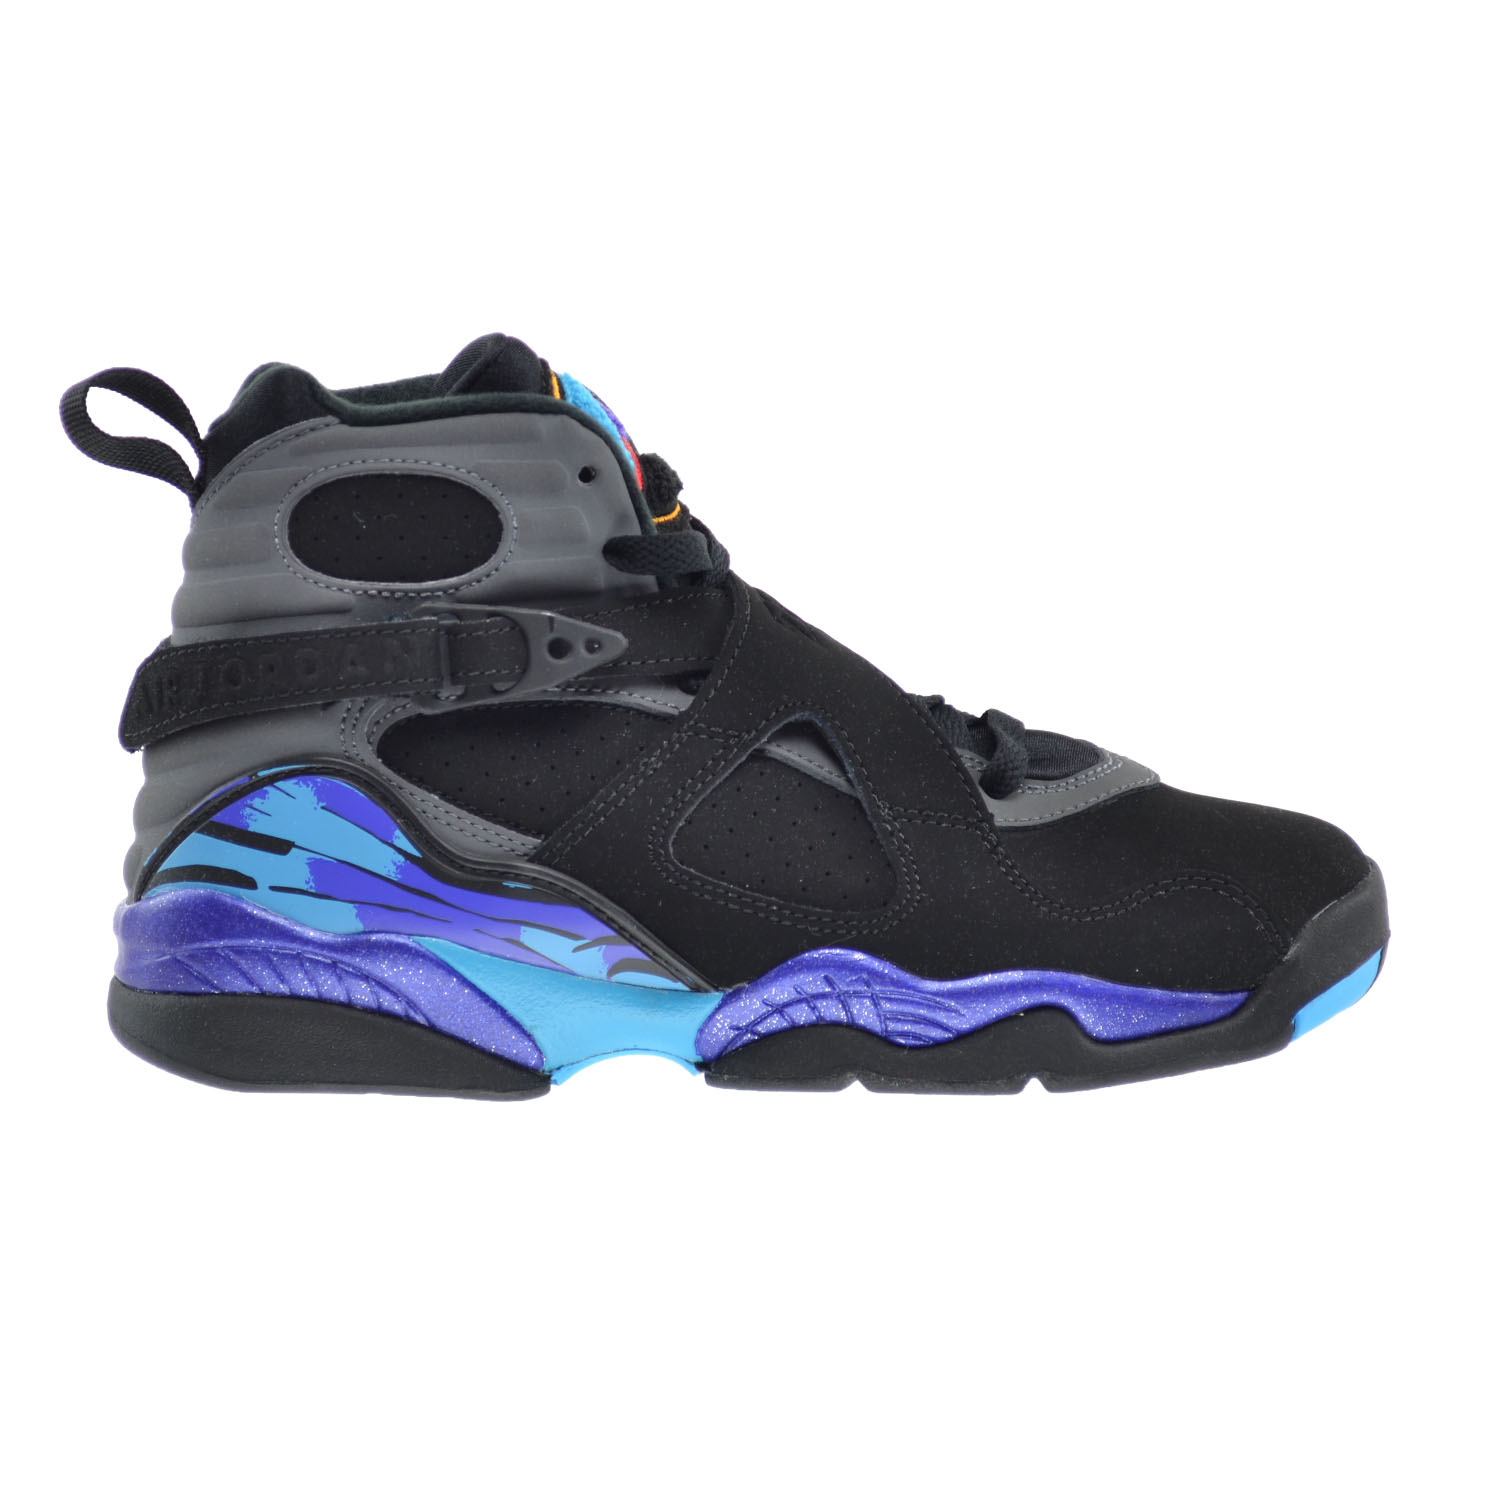 Air Jordan 8 Retro BG Big Kids Shoes Black/True Red-Bright Concord 305368-025